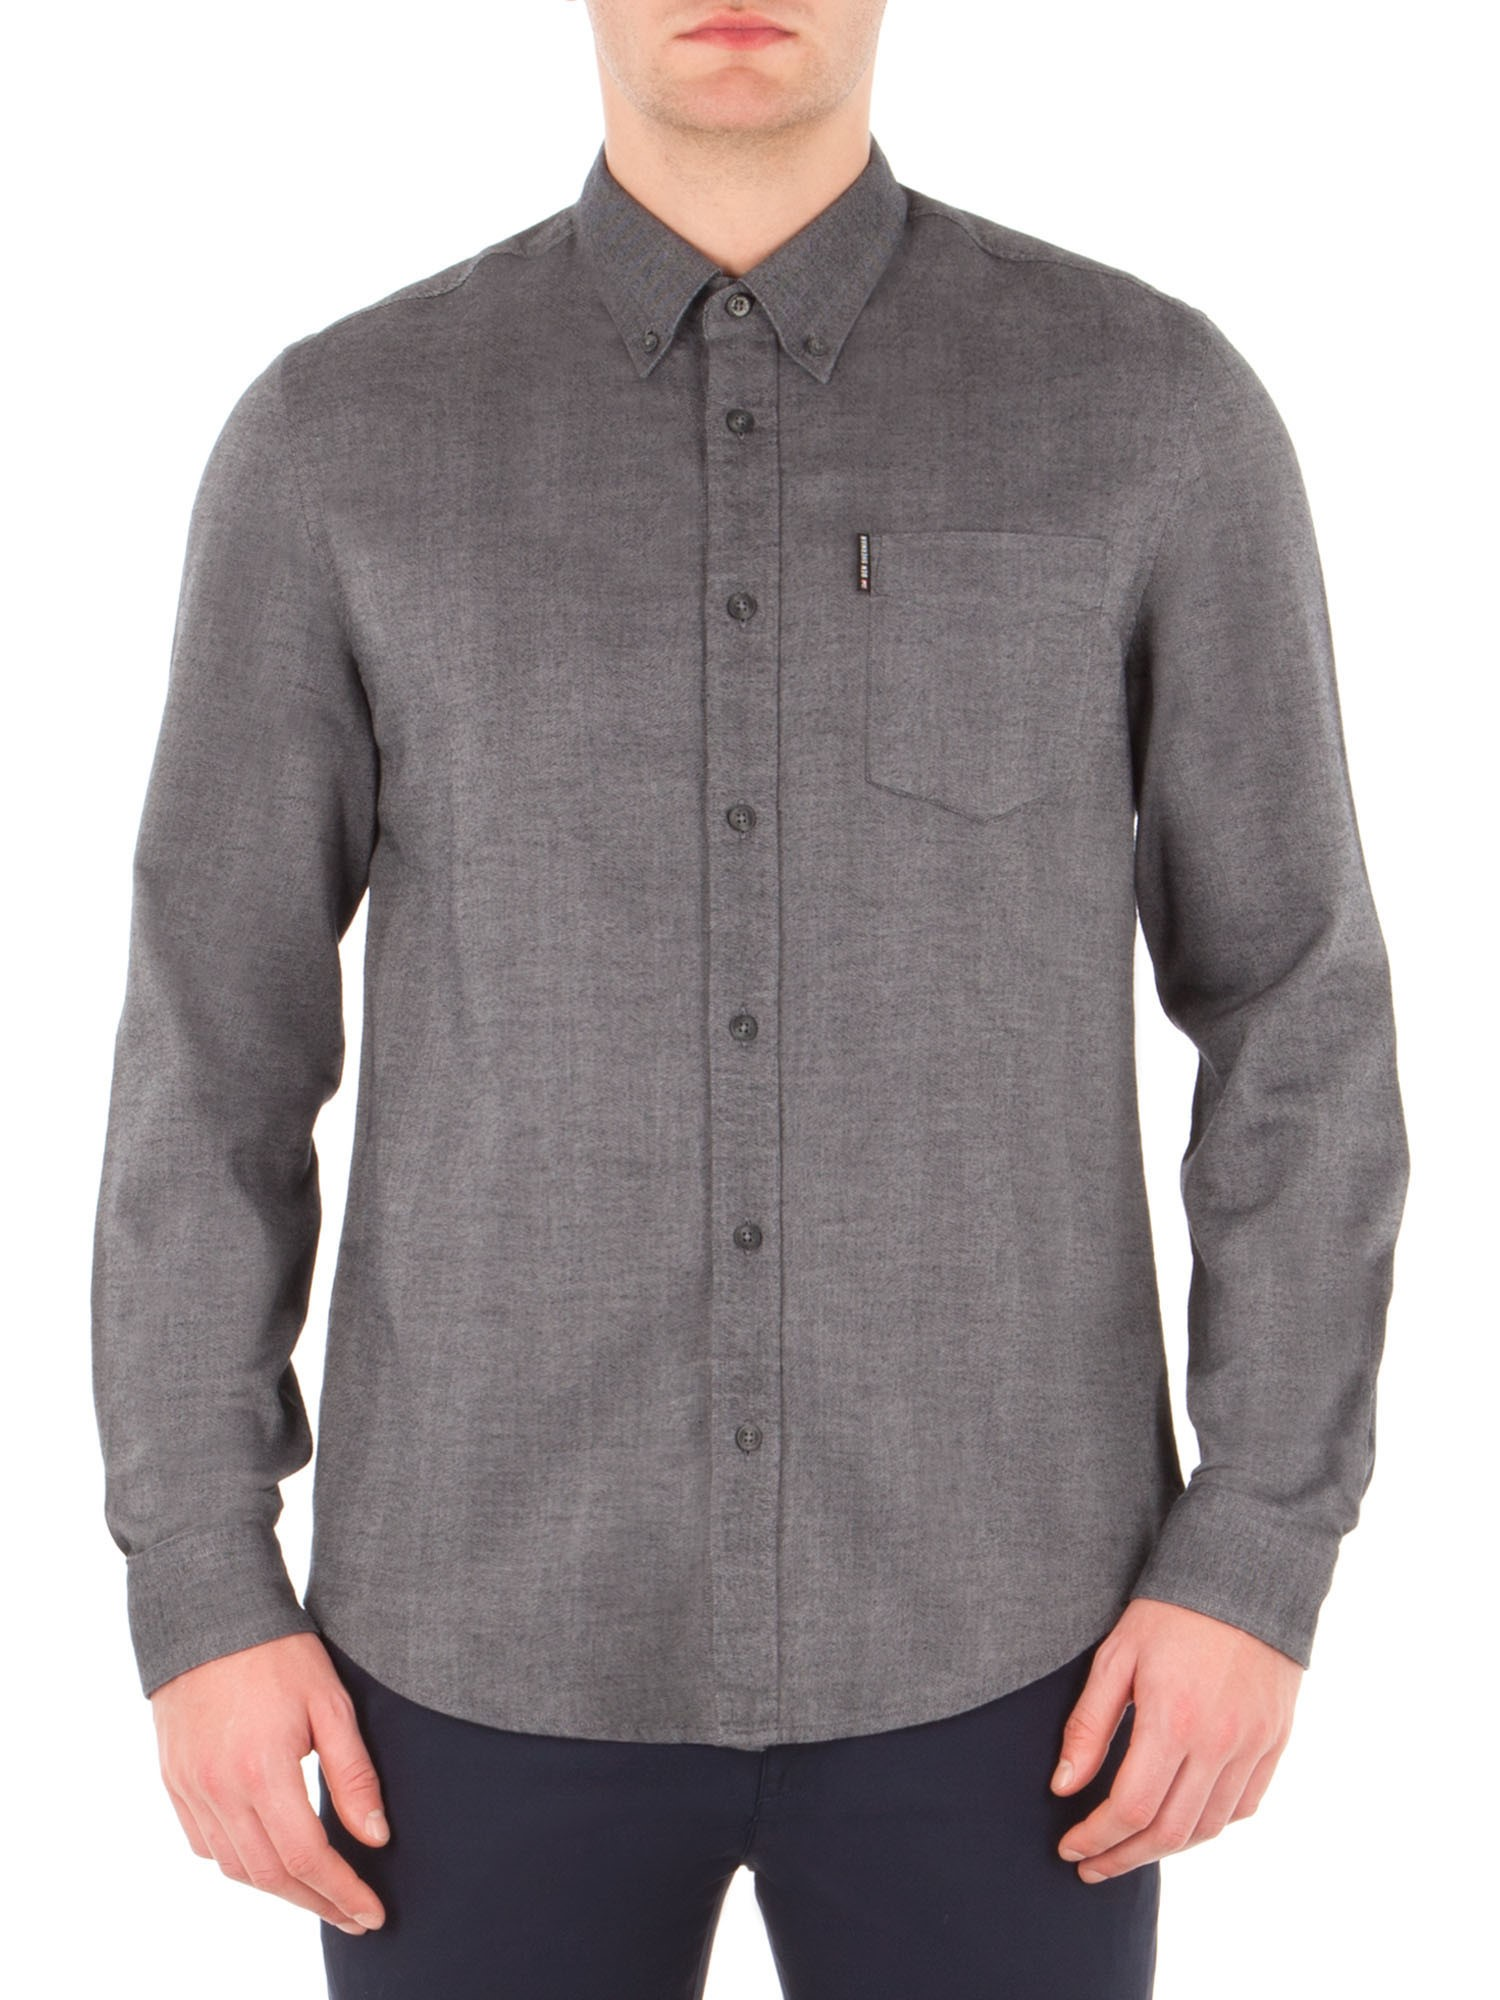 Ben Sherman Chimney Long Sleeve Brushed Plain Shirt